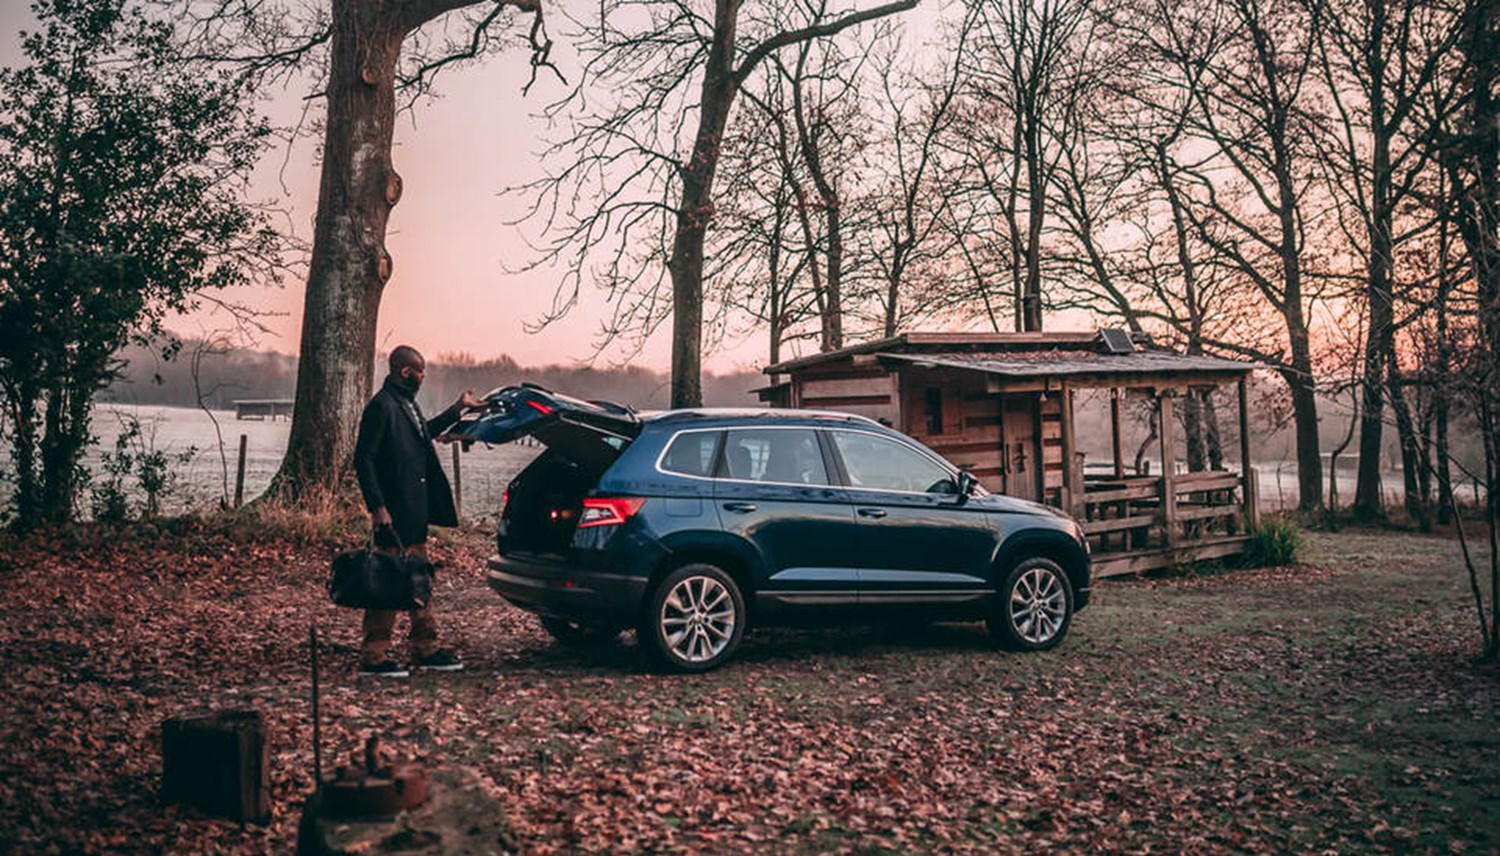 Skoda Karoq in blue in forest setting with wooden cabin and man opening boot